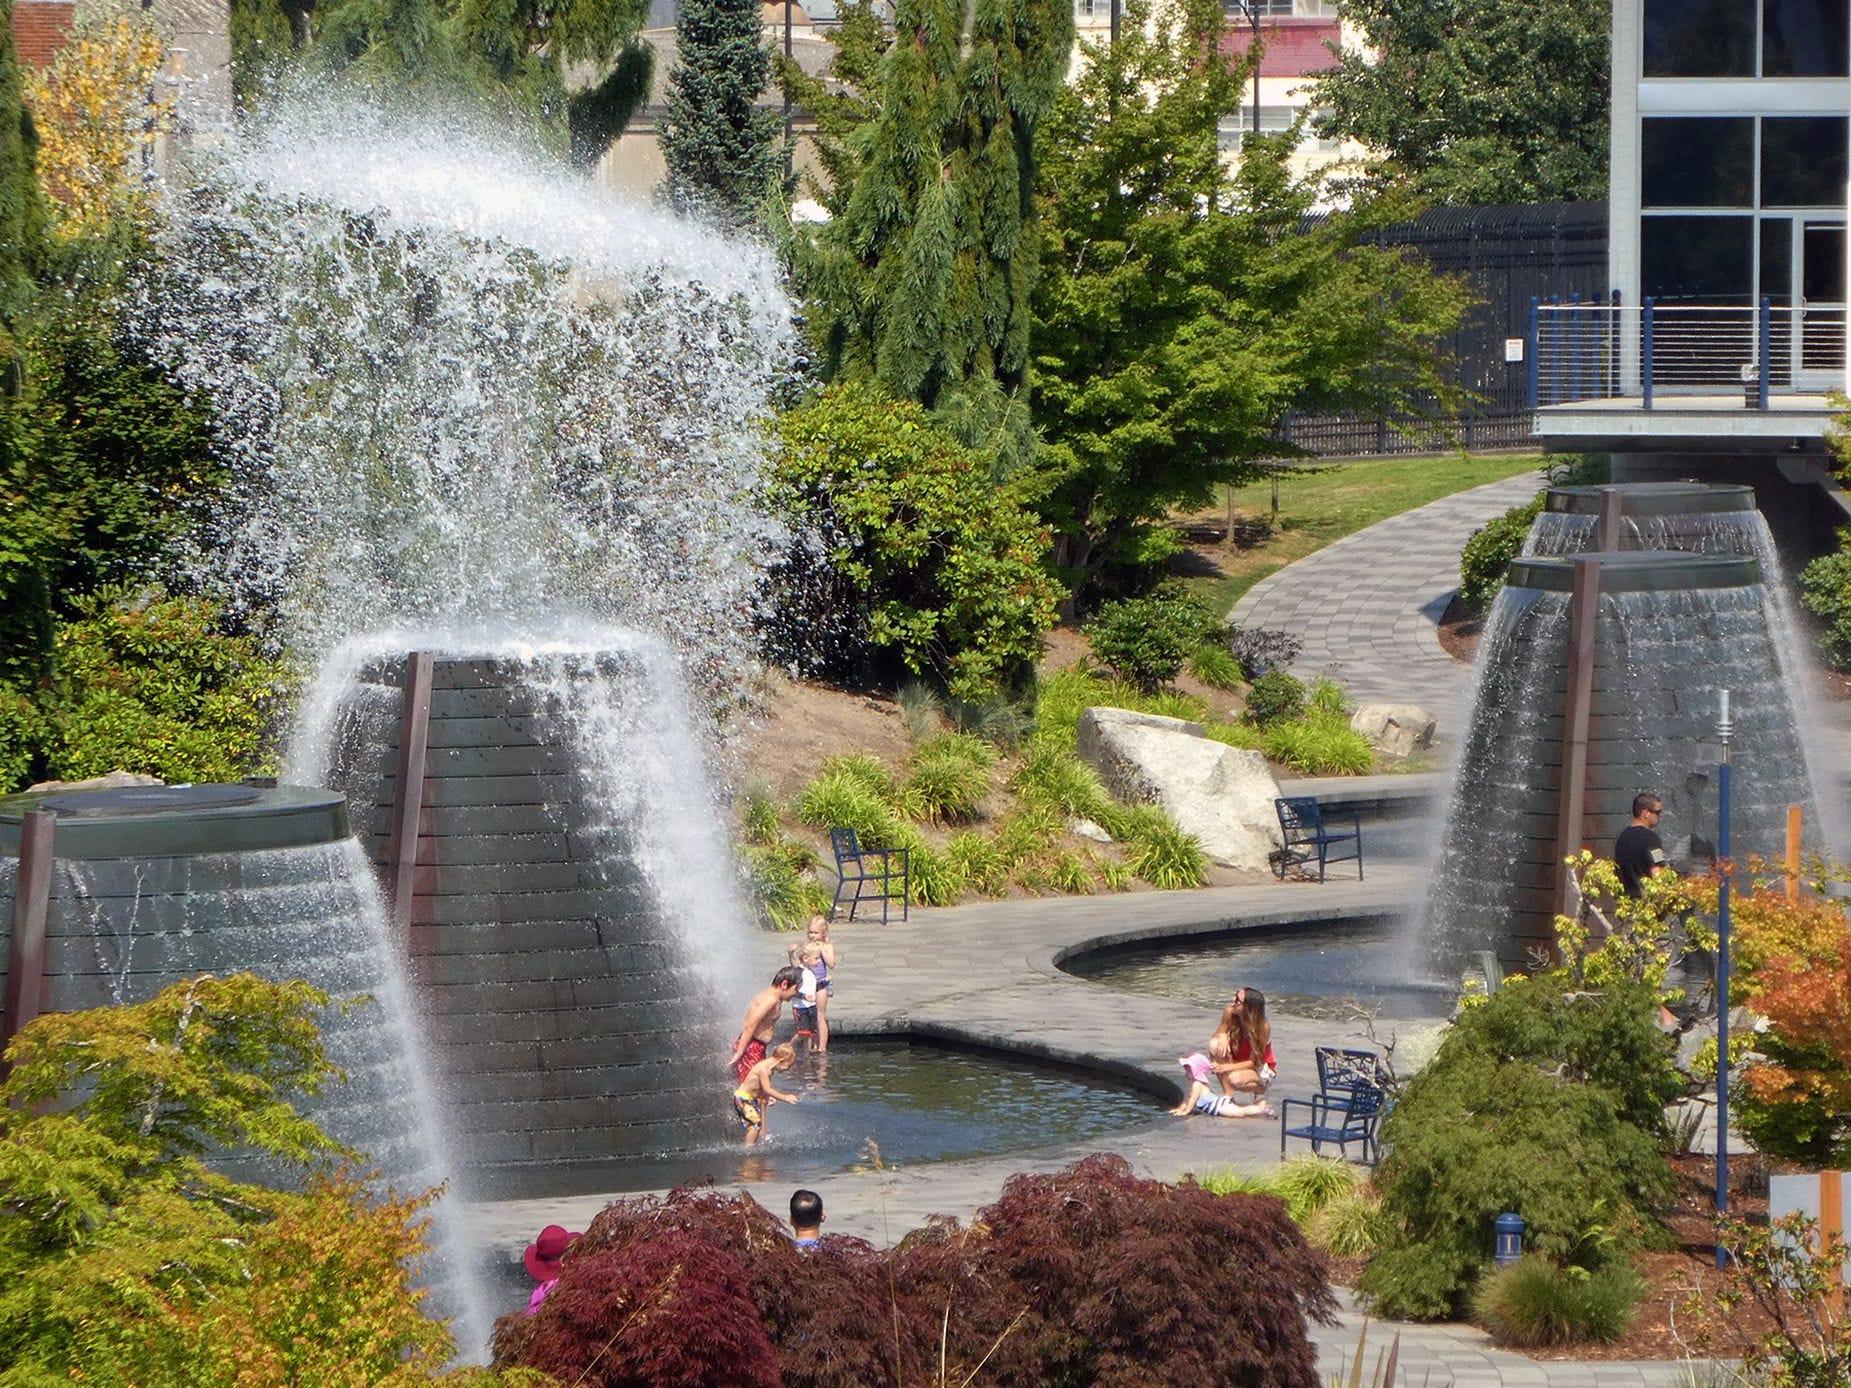 One of the Bremerton Harborside Fountains in Bremerton erupts on a hot Sunday.